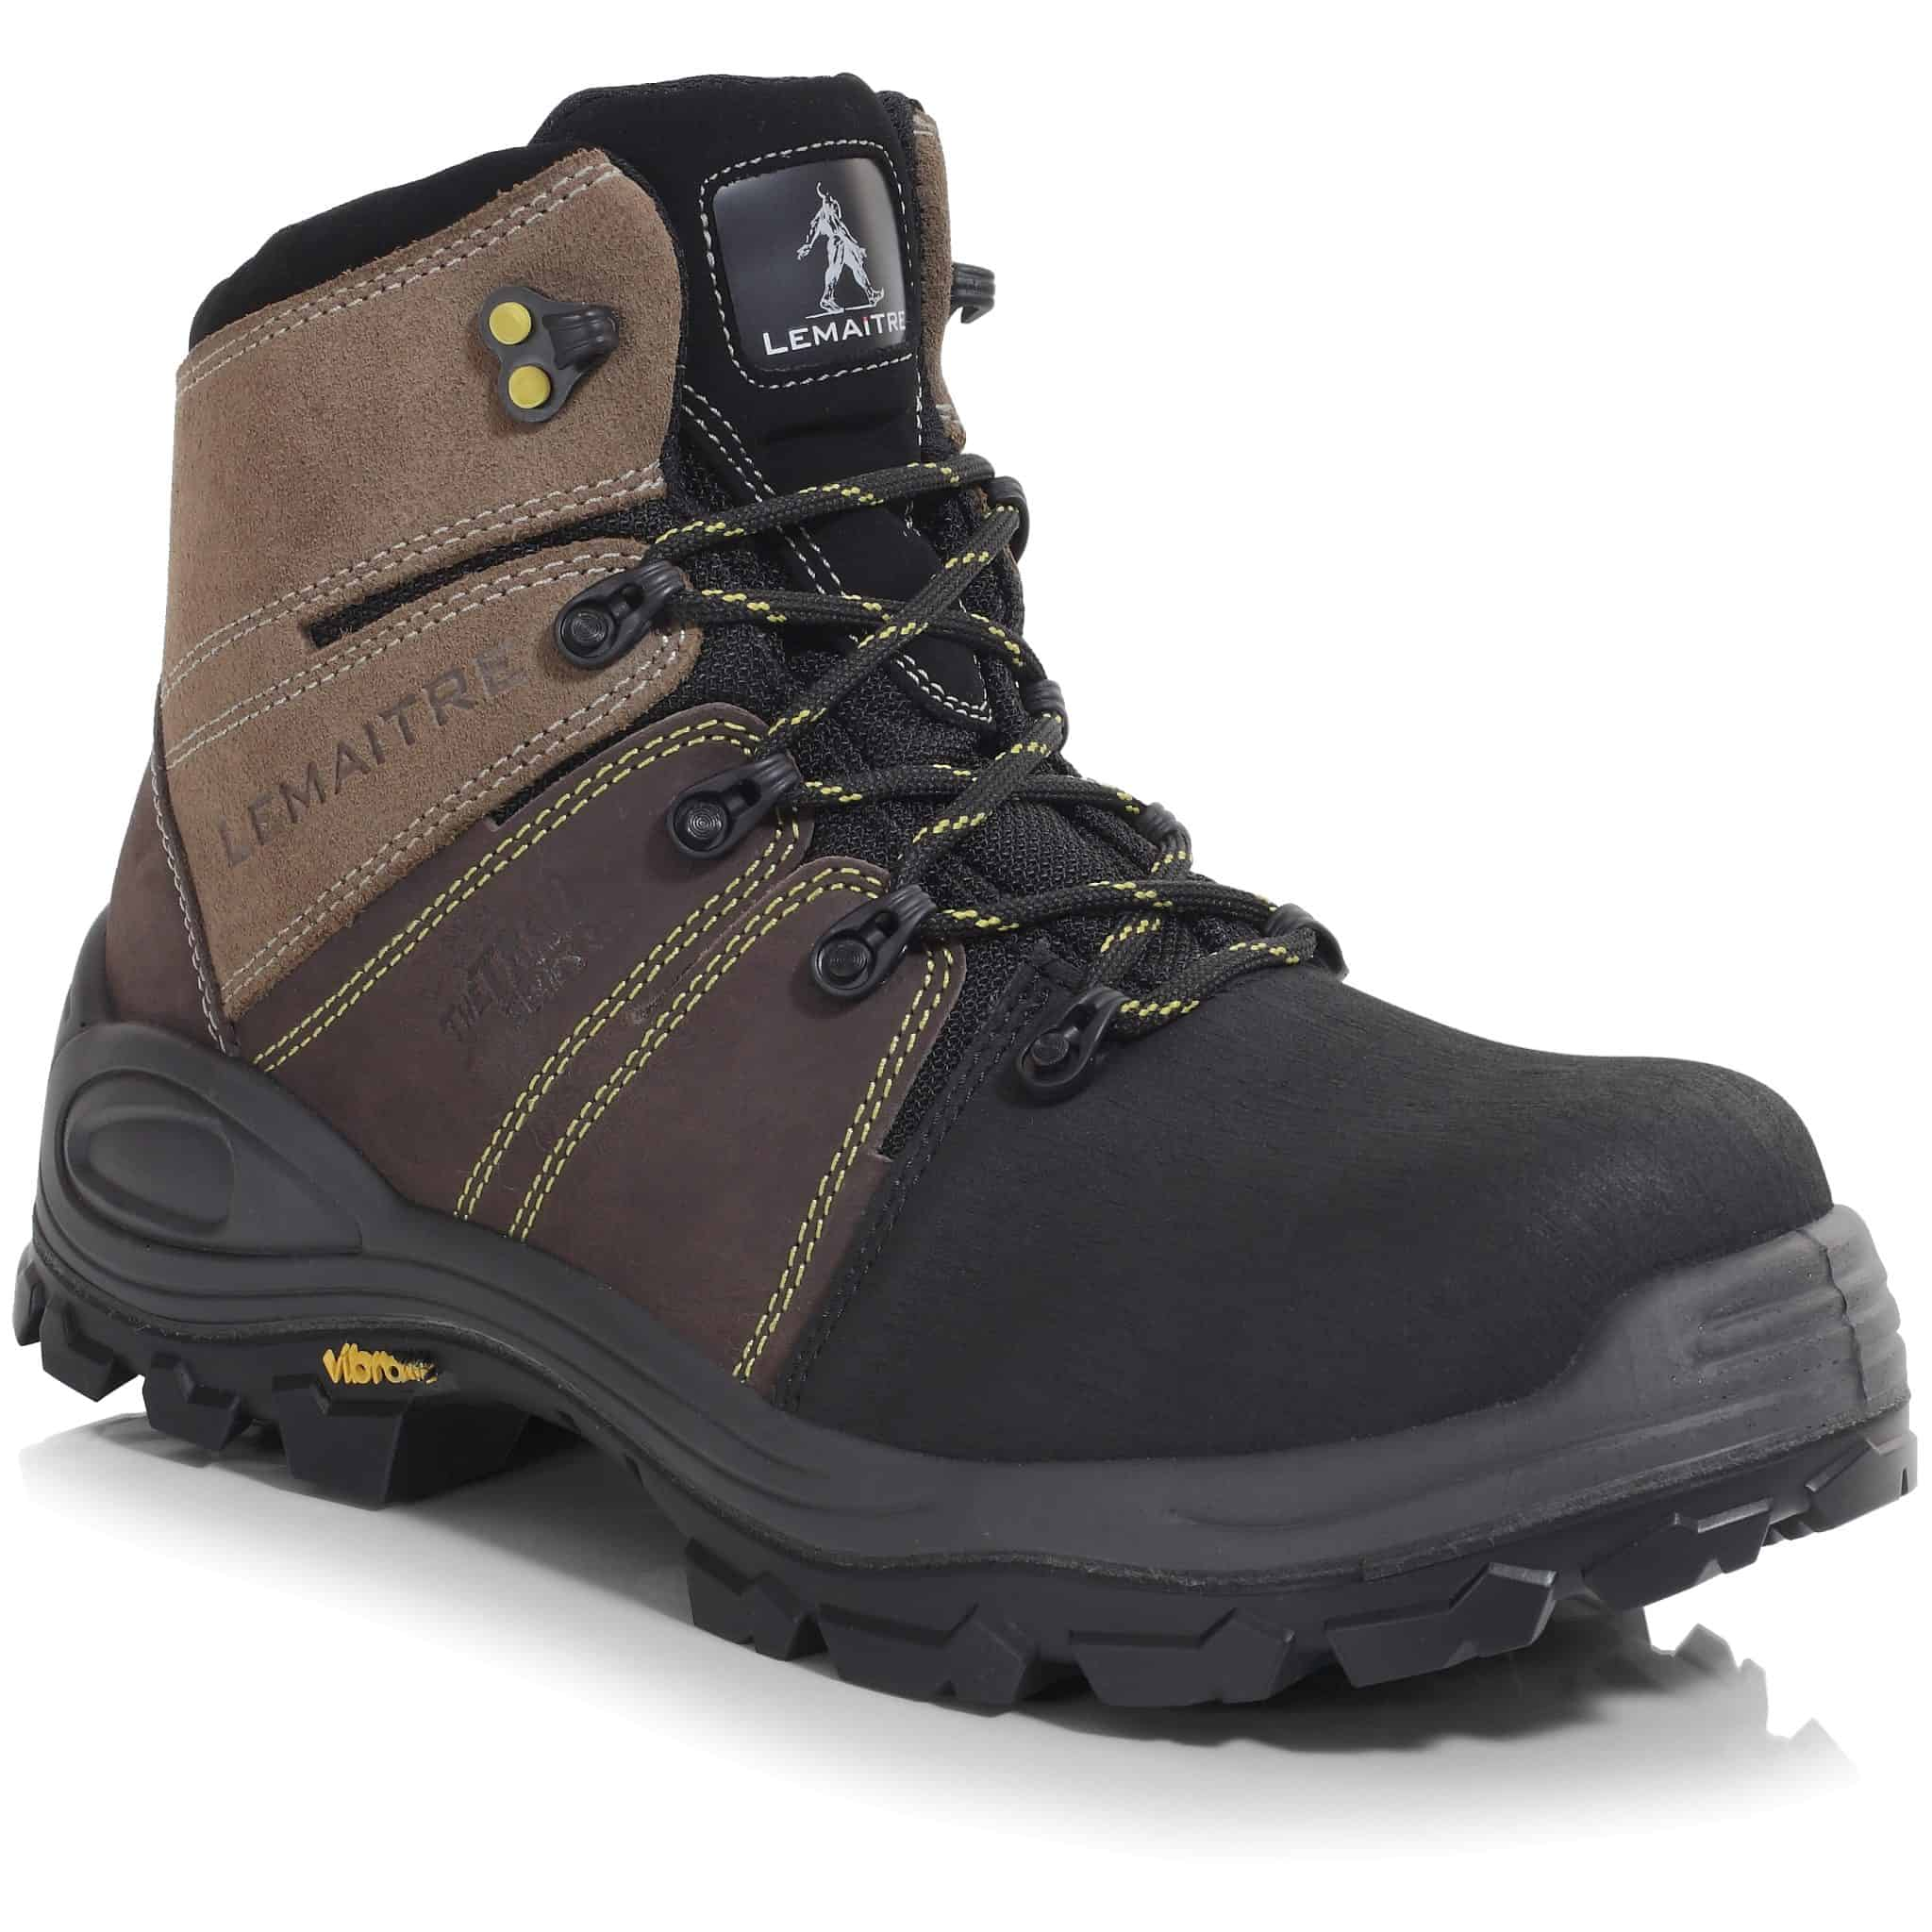 Trek Brun – Lightweight S3 SRC WR PU/Vibram Non-Metal Sympatex Waterproof Safety Hiker Boots